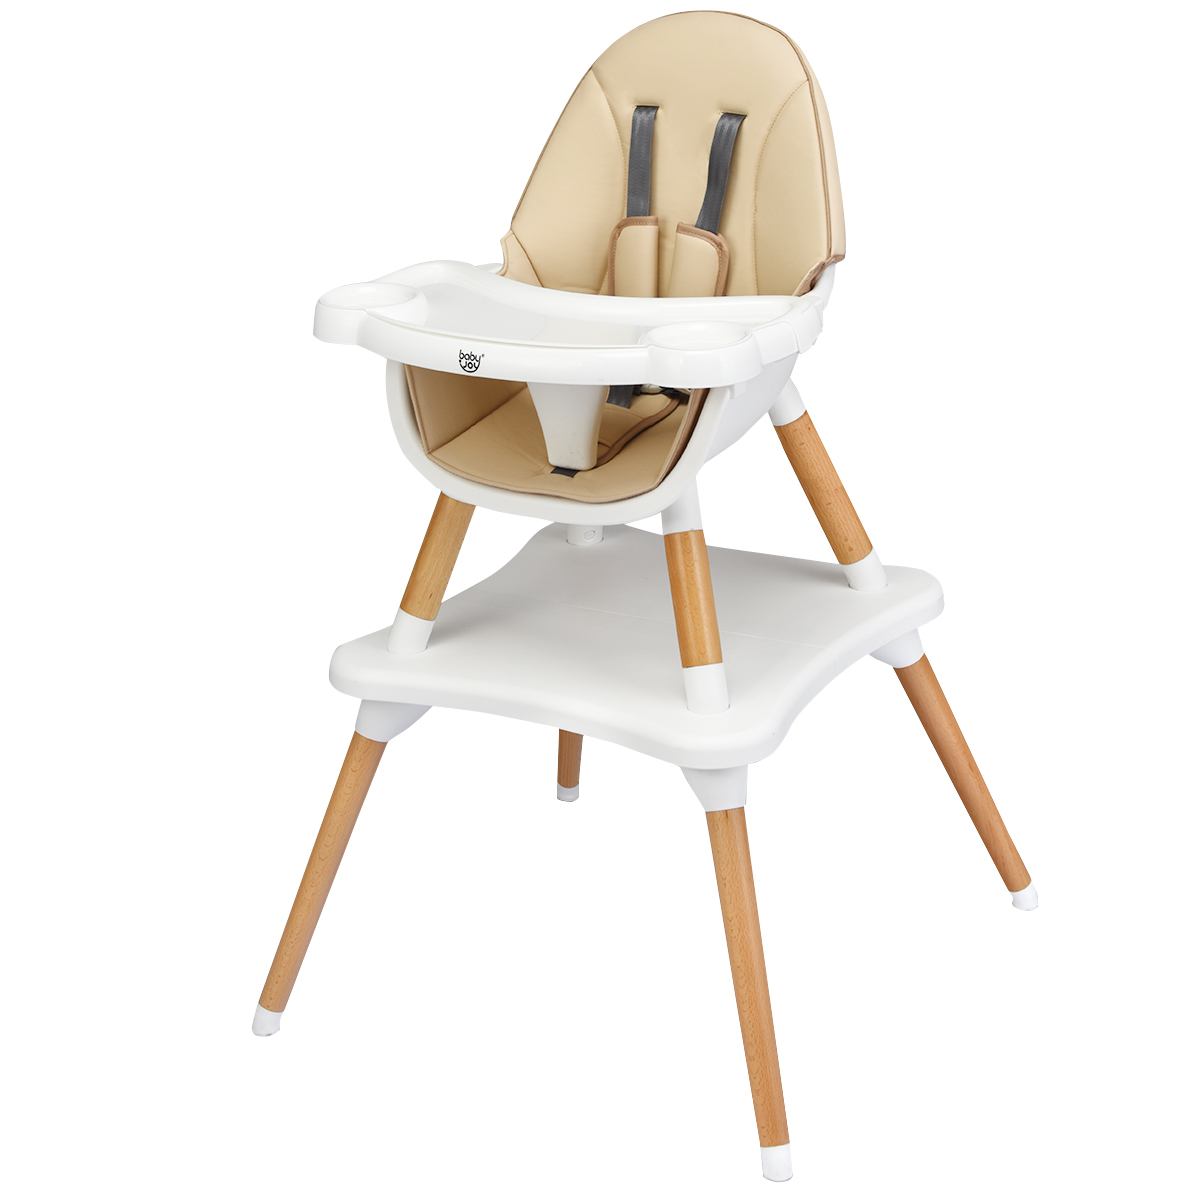 4-in-1 Baby High Chair Infant Wooden Convertible Chair W/5-Point Seat Belt Khaki